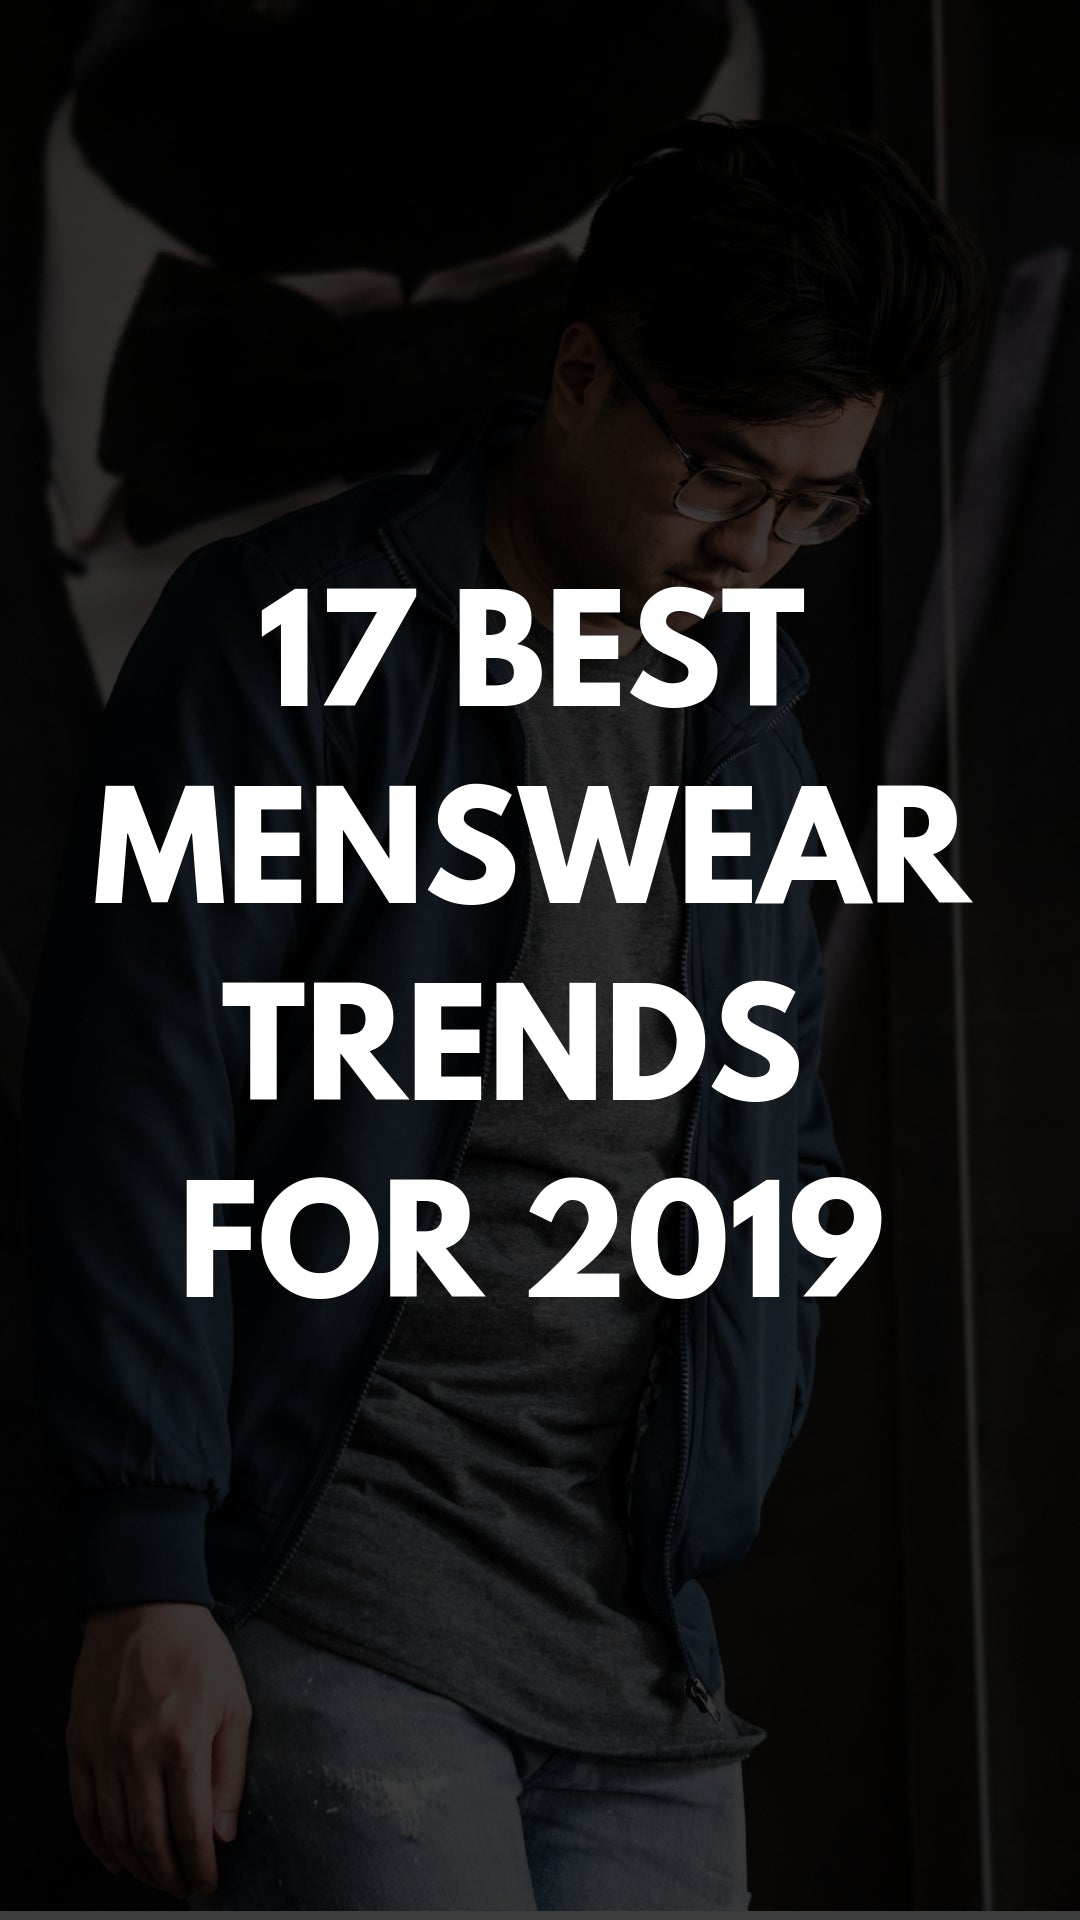 17 Best Menswear Trends & Tips to Follow In 2019 #menswear #mensfashion #trends #fashiontips